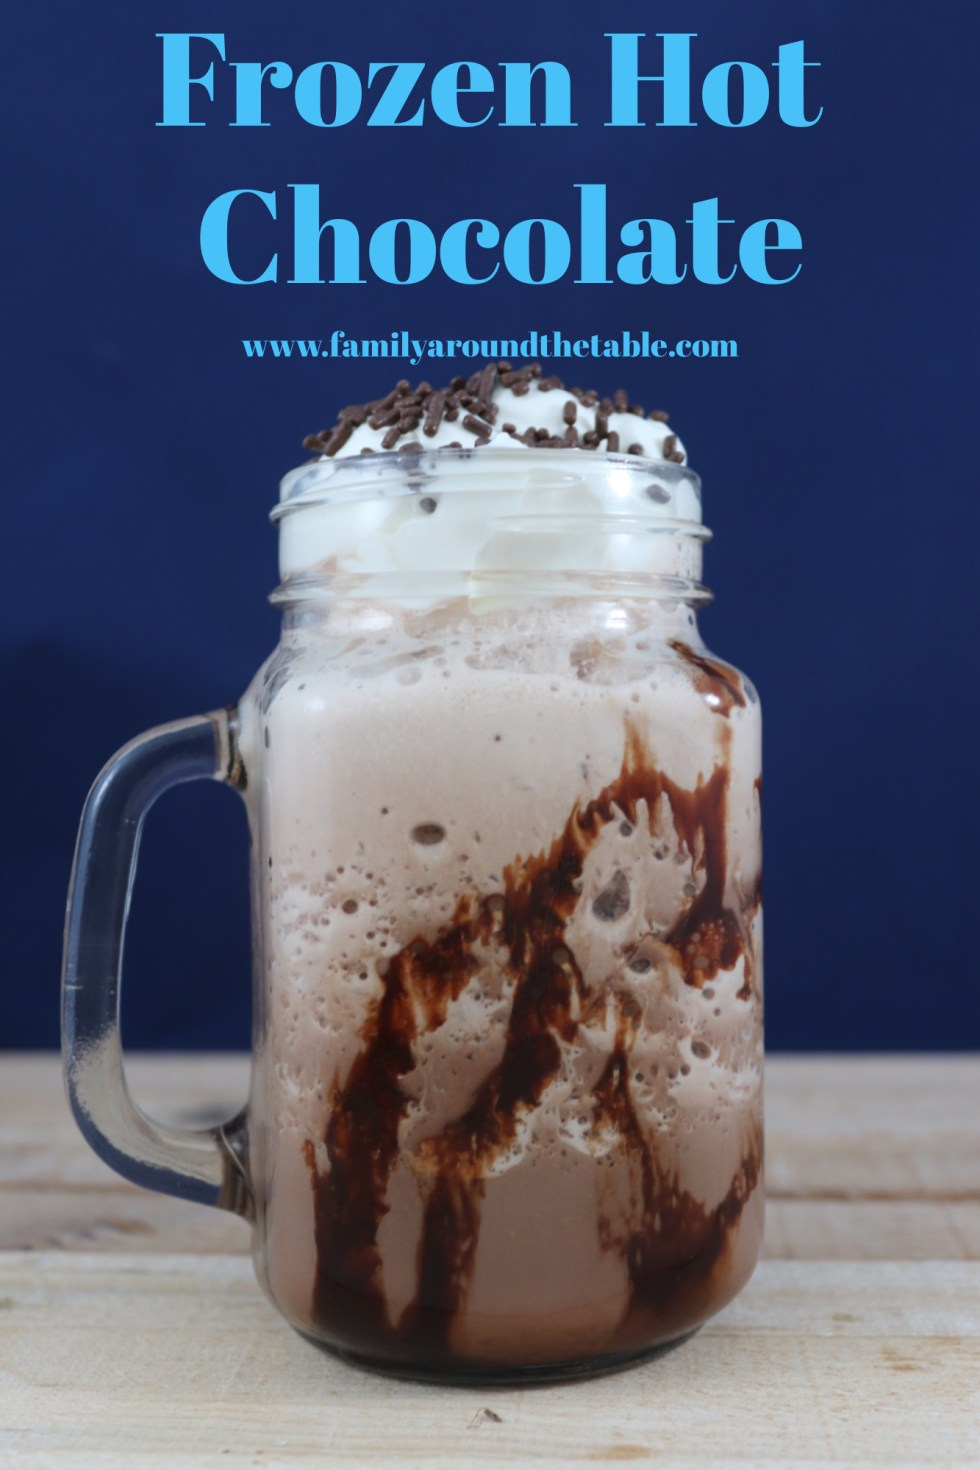 Frozen hot chocolate Pinterest image.